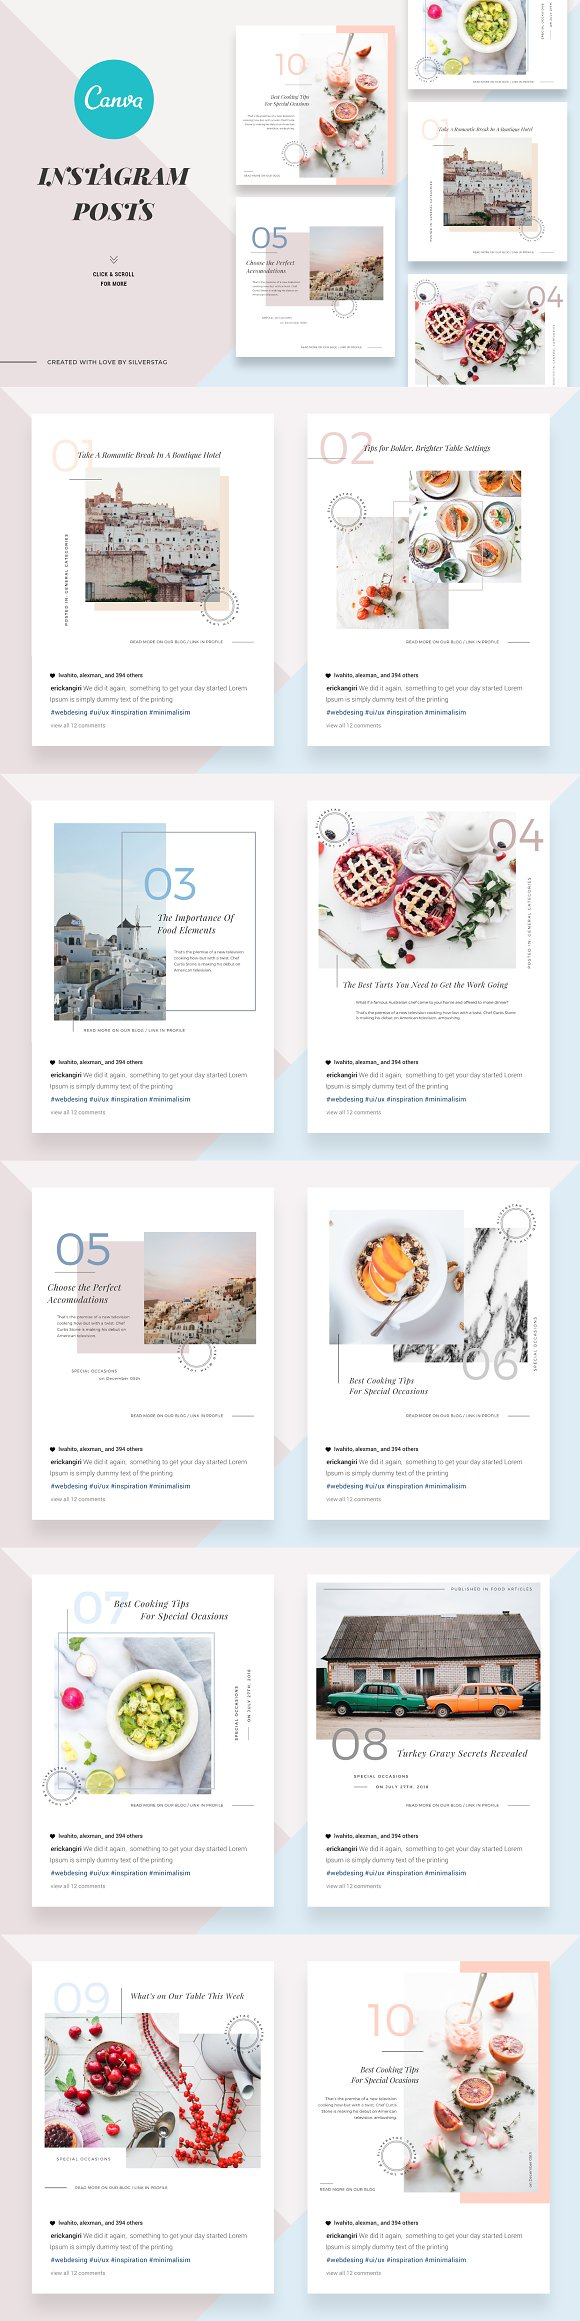 CANVA Food & Travel Instagram Posts in Instagram Templates